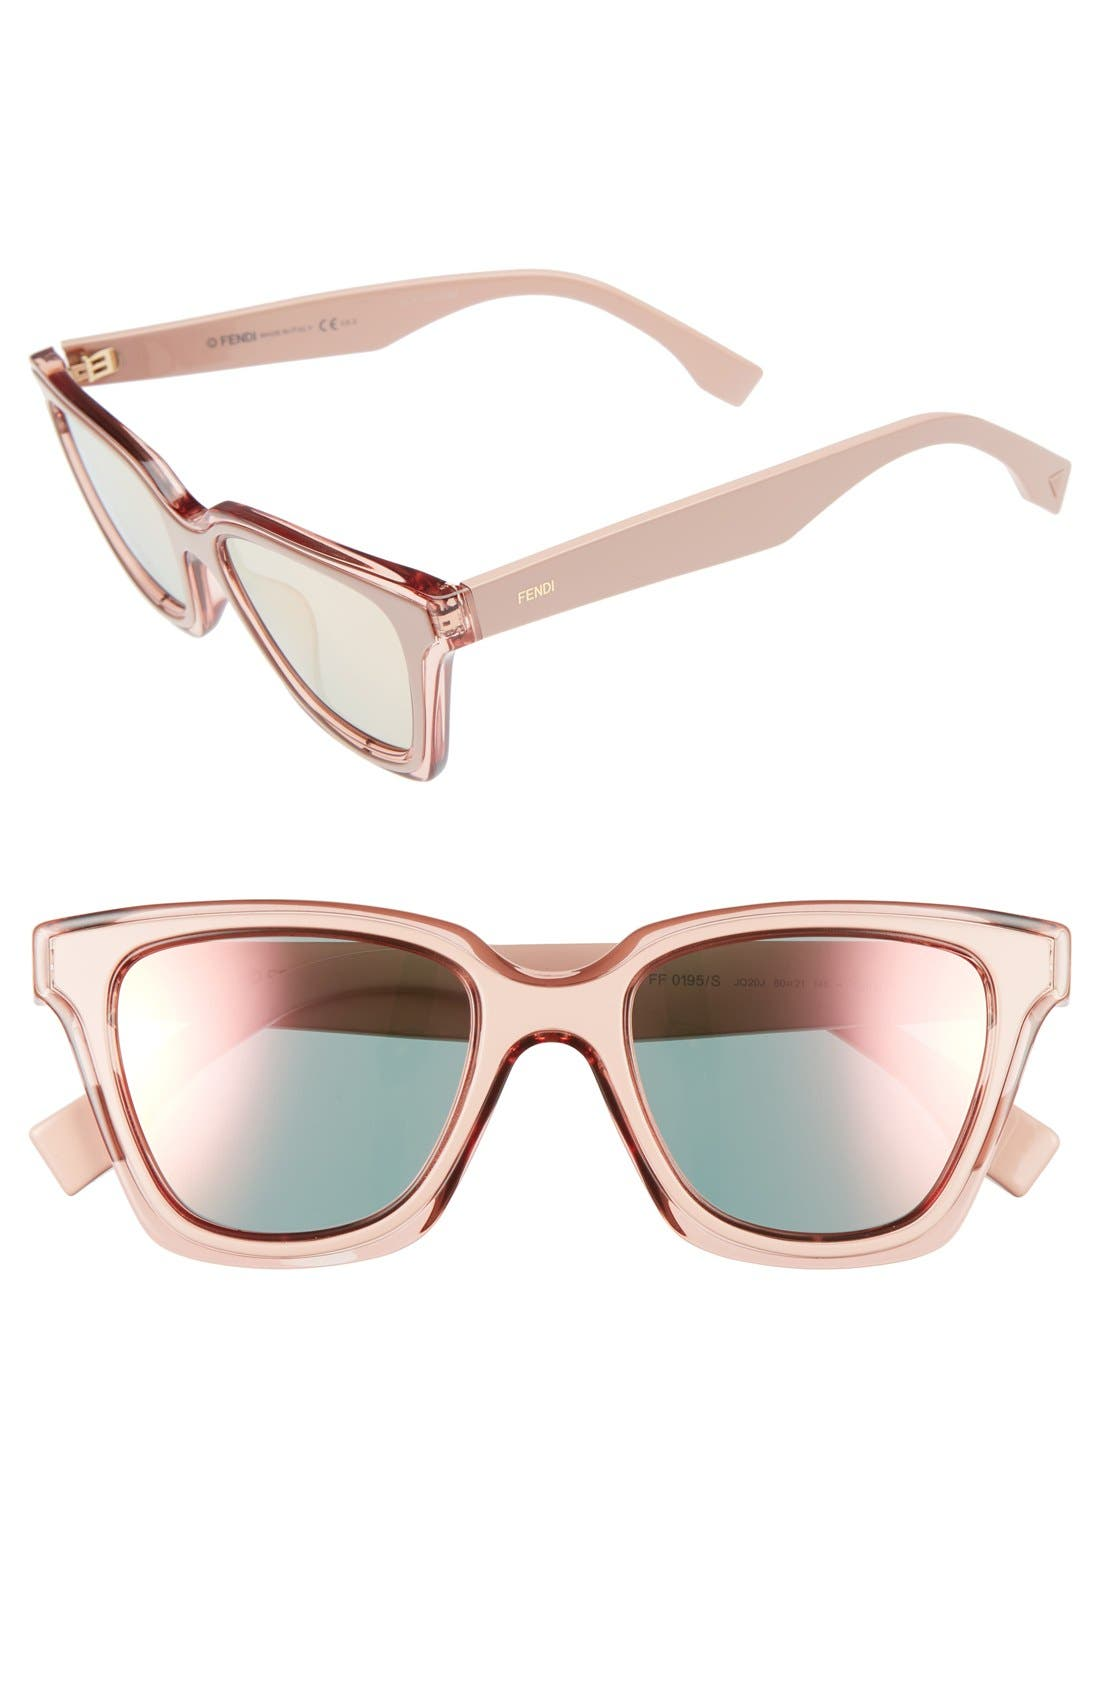 Be You 50mm Gradient Sunglasses,                             Main thumbnail 1, color,                             Pink